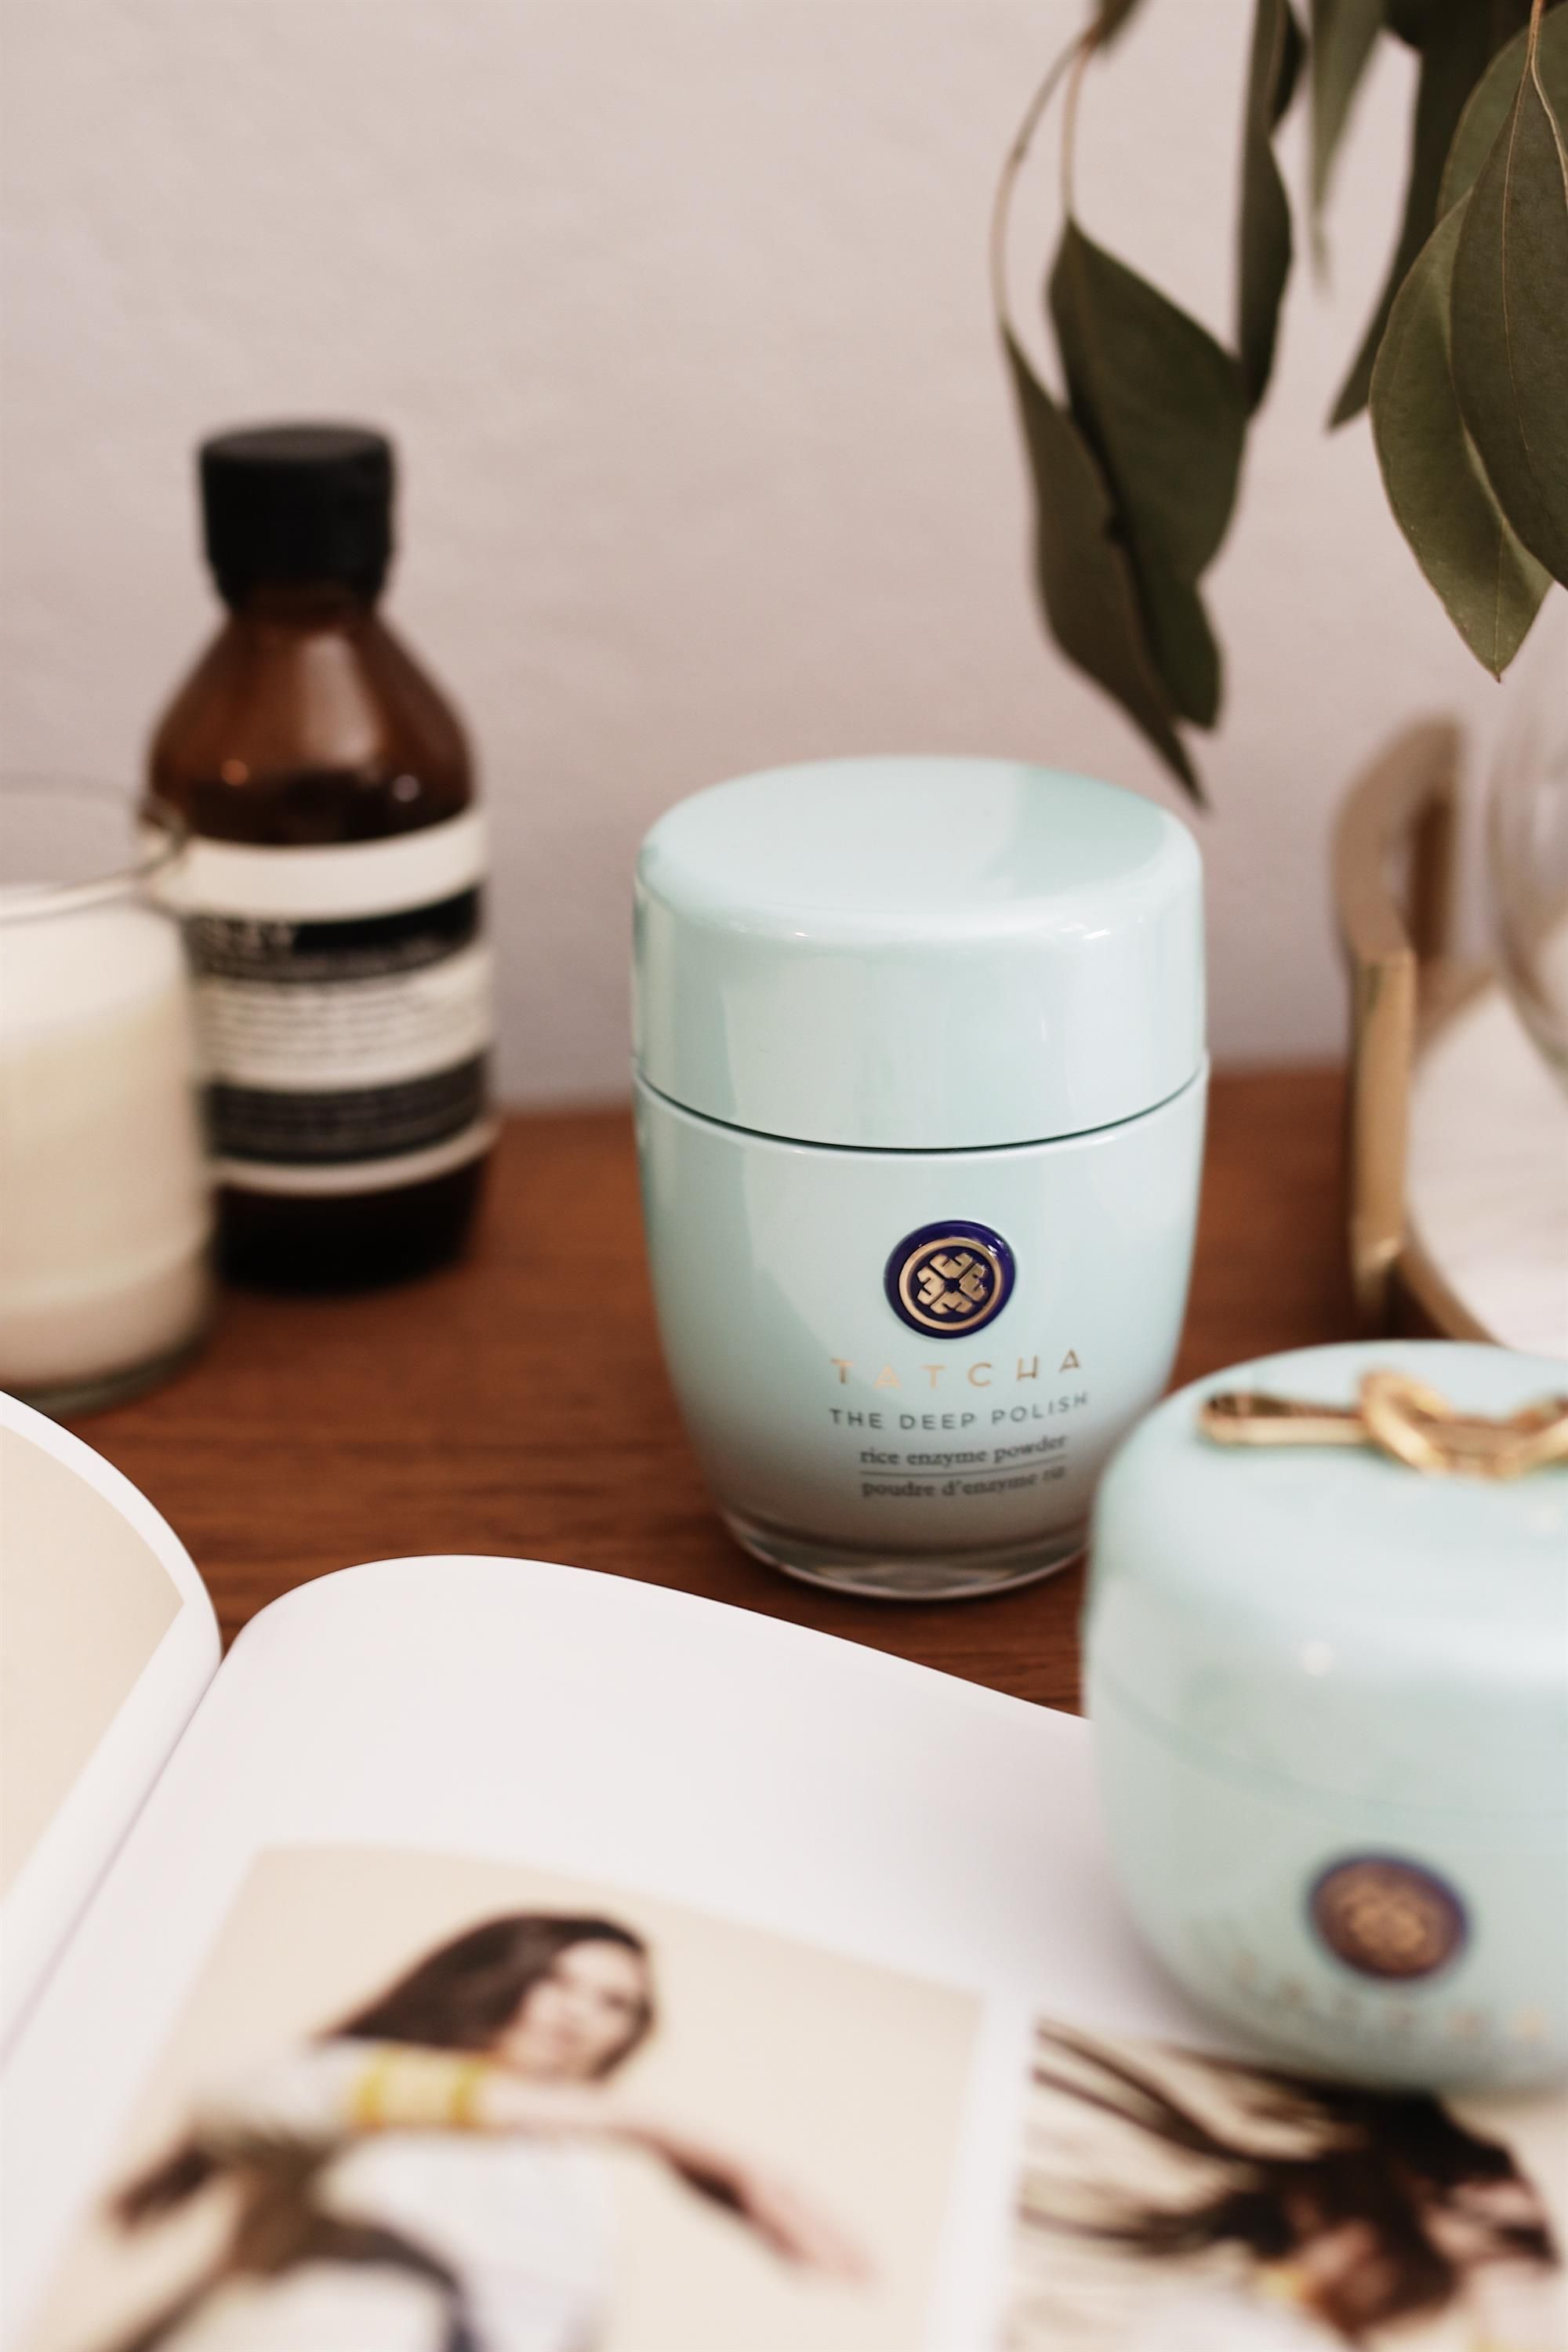 Seriously obsessed with these Japanese beauty gurus. This @Tatcha enzyme polish is the perfect way to start my morning routine. #ad #sponsored Click image or shop at https://go2b.uy/%40UnconsciousStyle/3